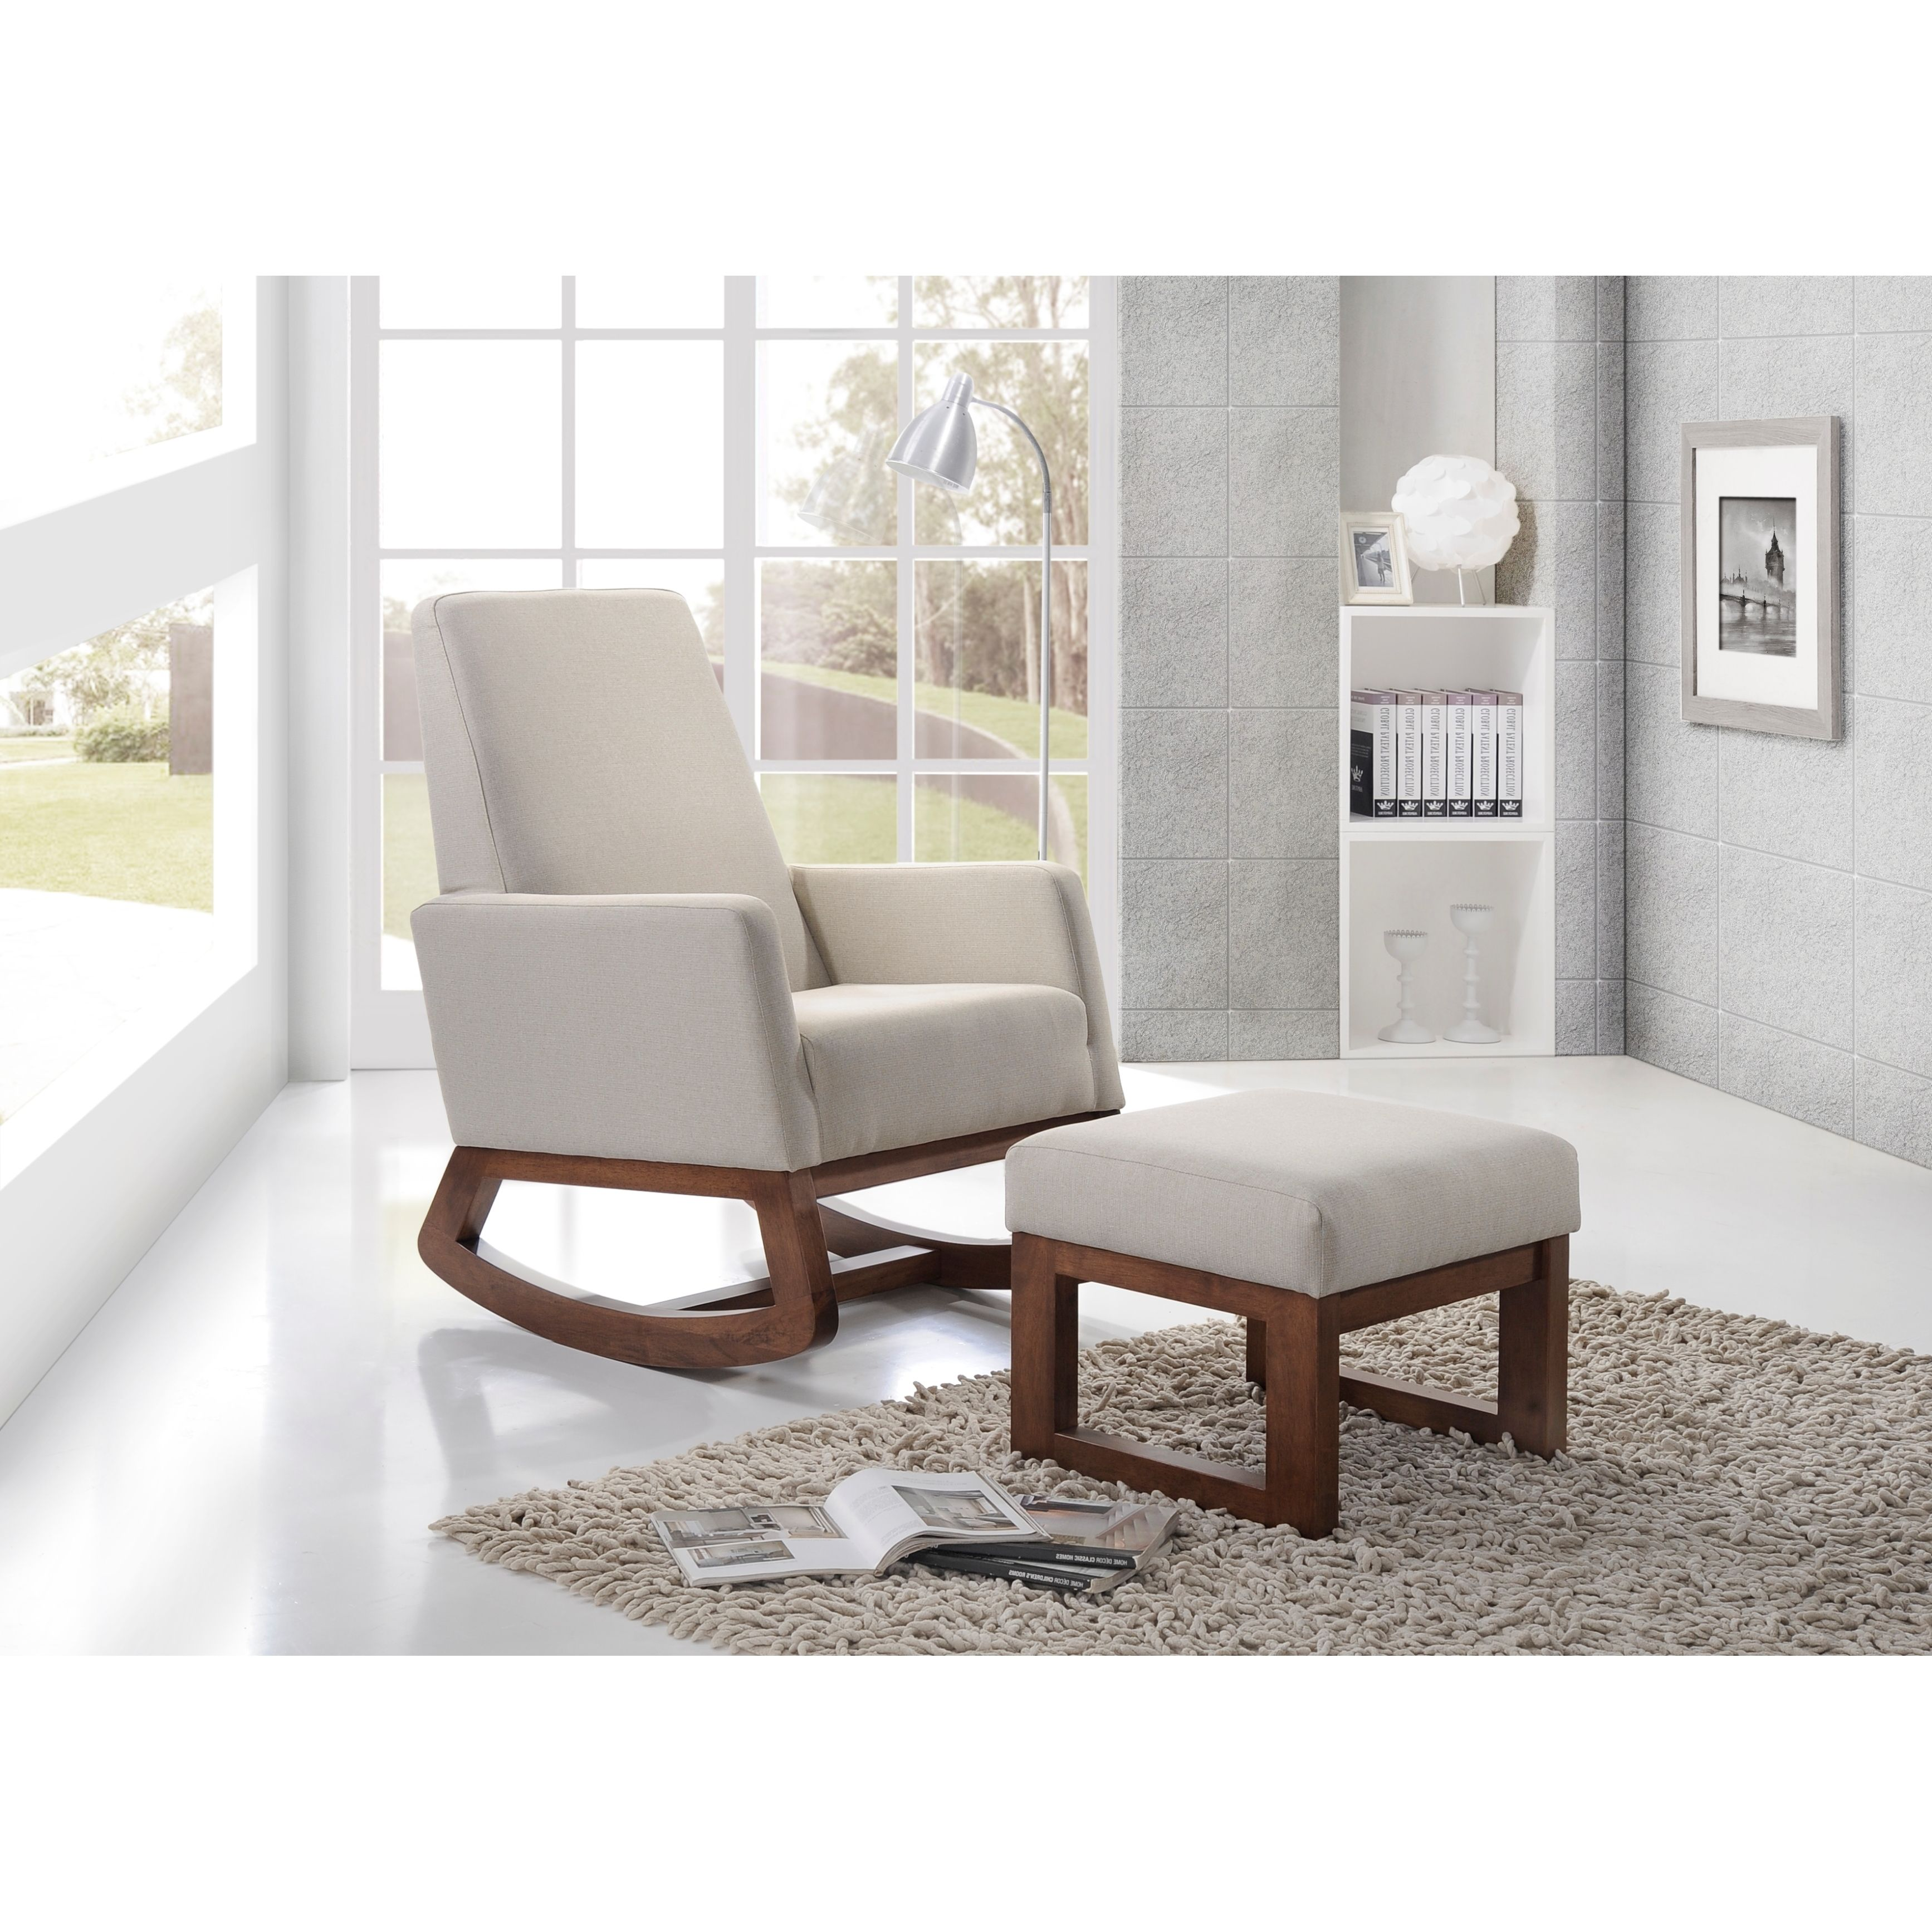 Inspired by mid century modern design the Yashiya rocking chair